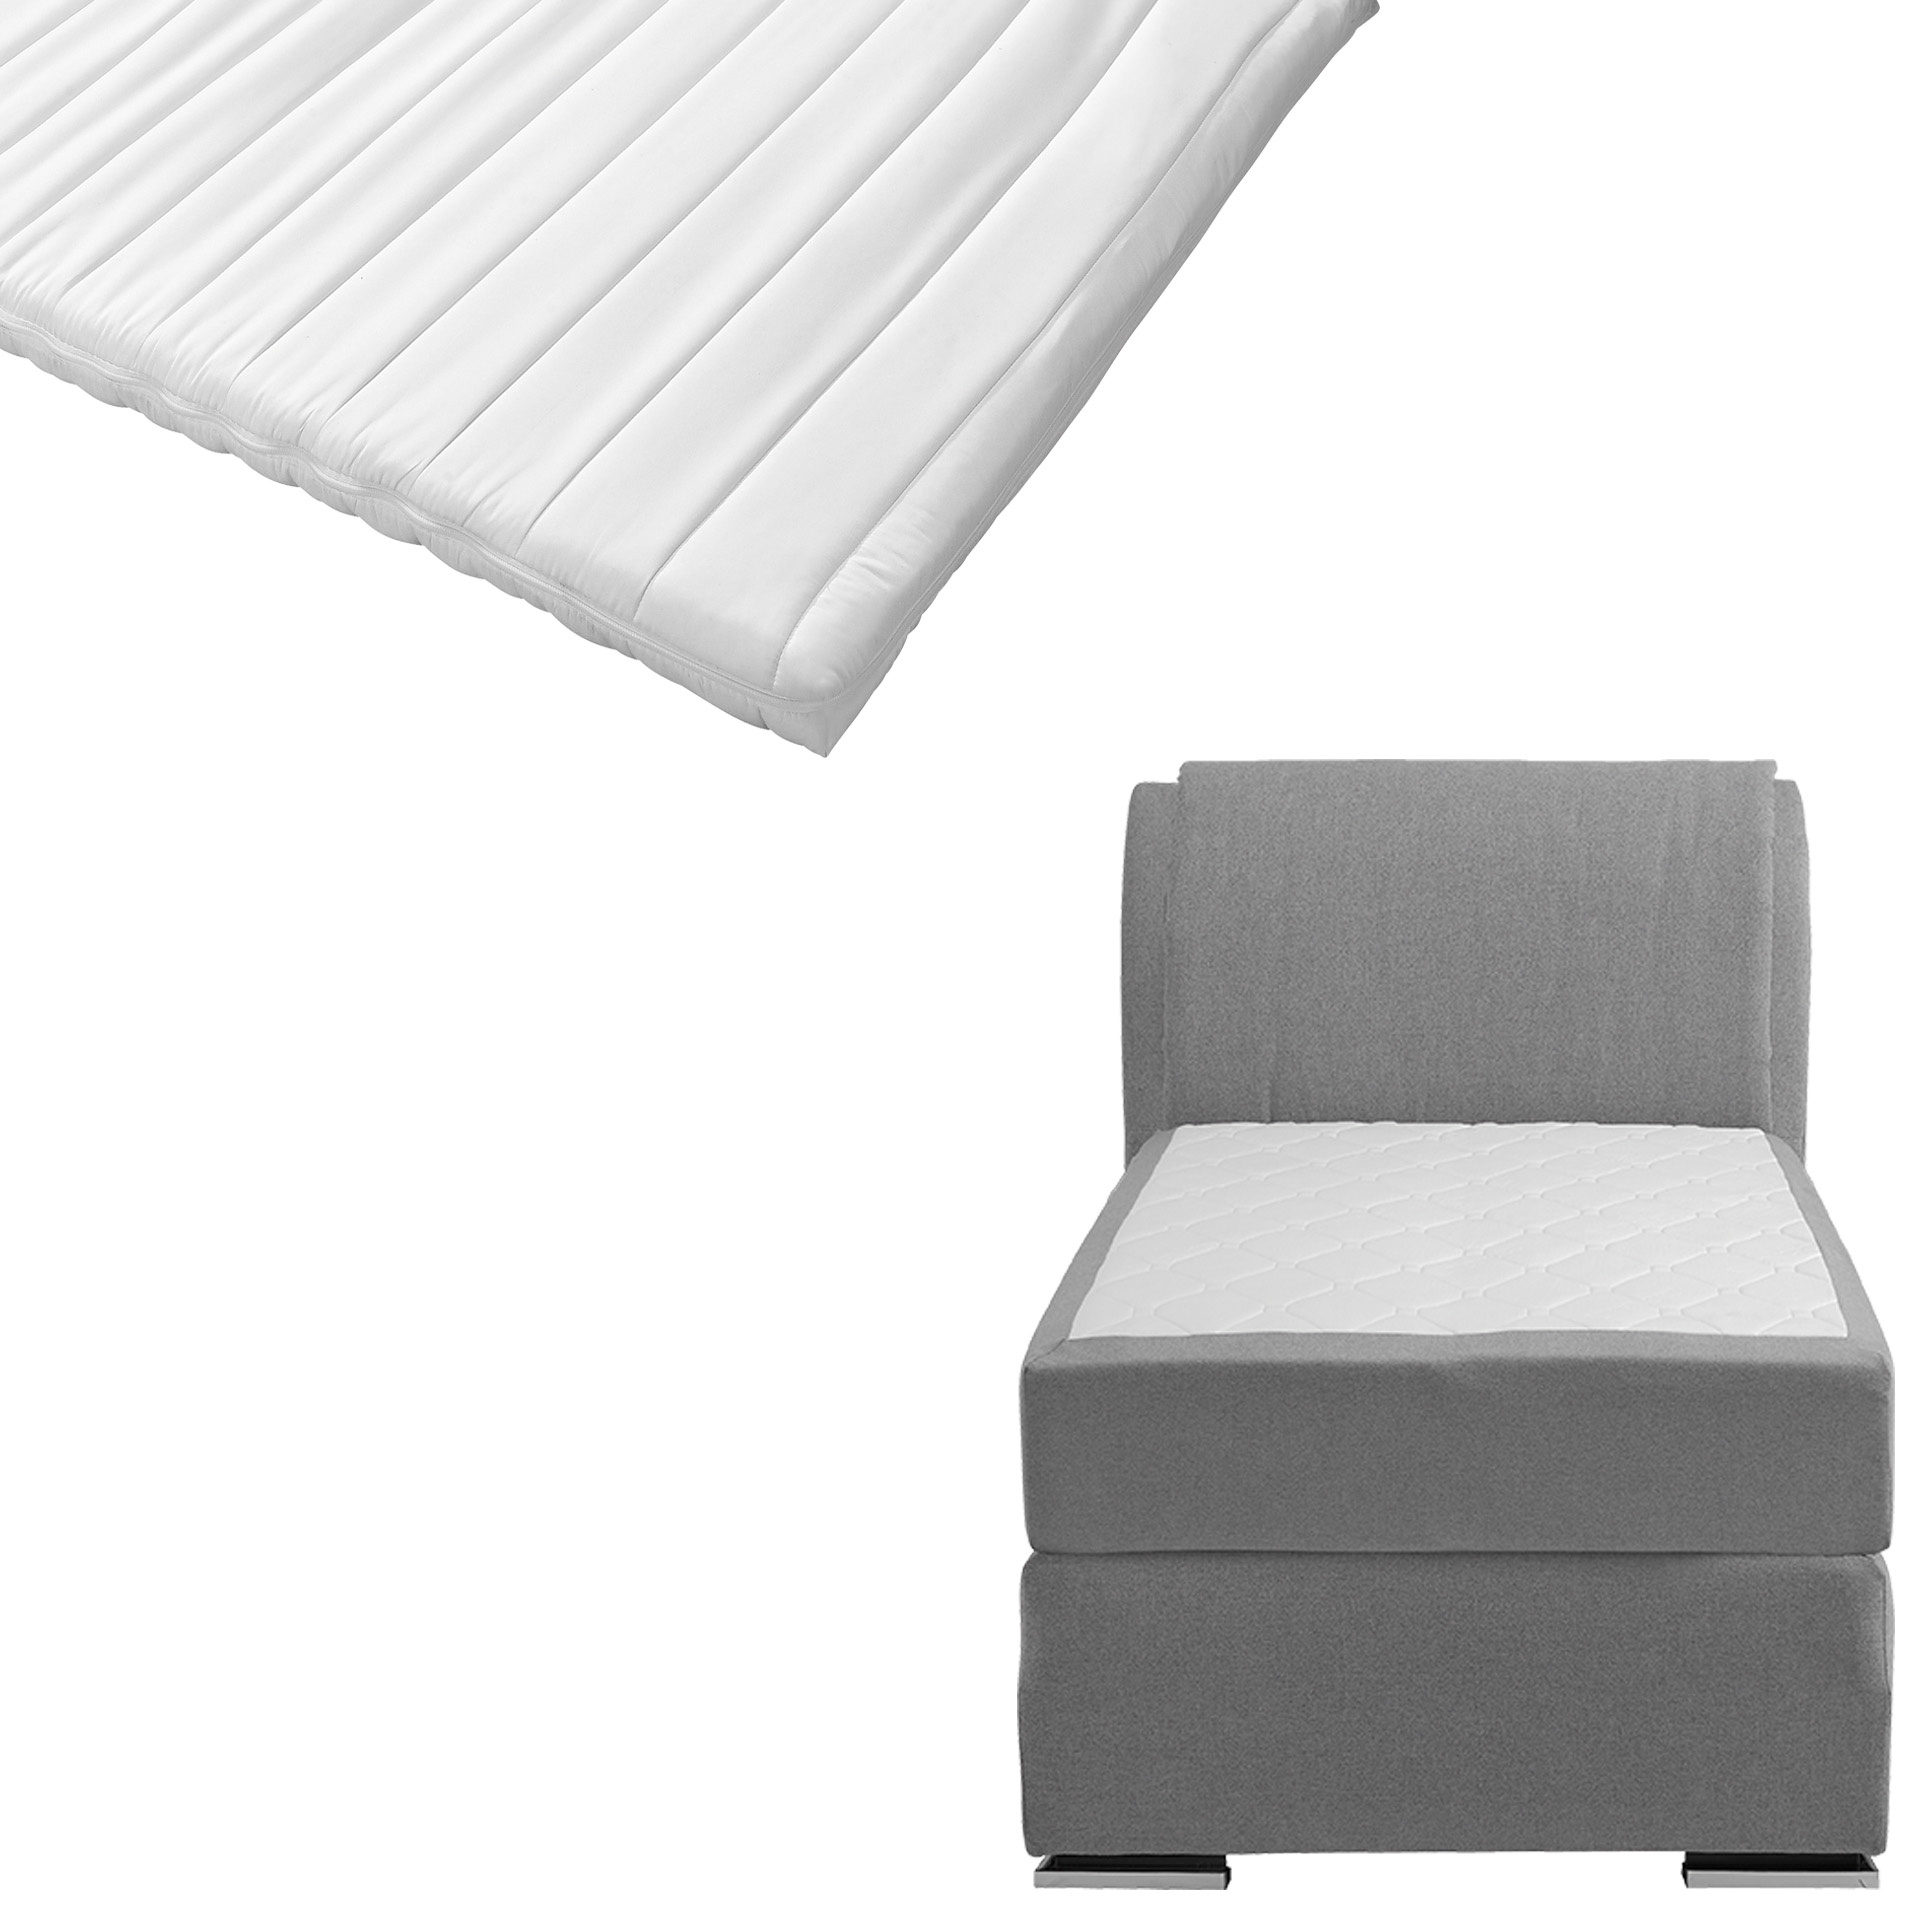 Boxspringbett-Set SUPERDREAM Himmerland/ErgoMAXX® Komfortschaum-Topper Stockholm (90x200)